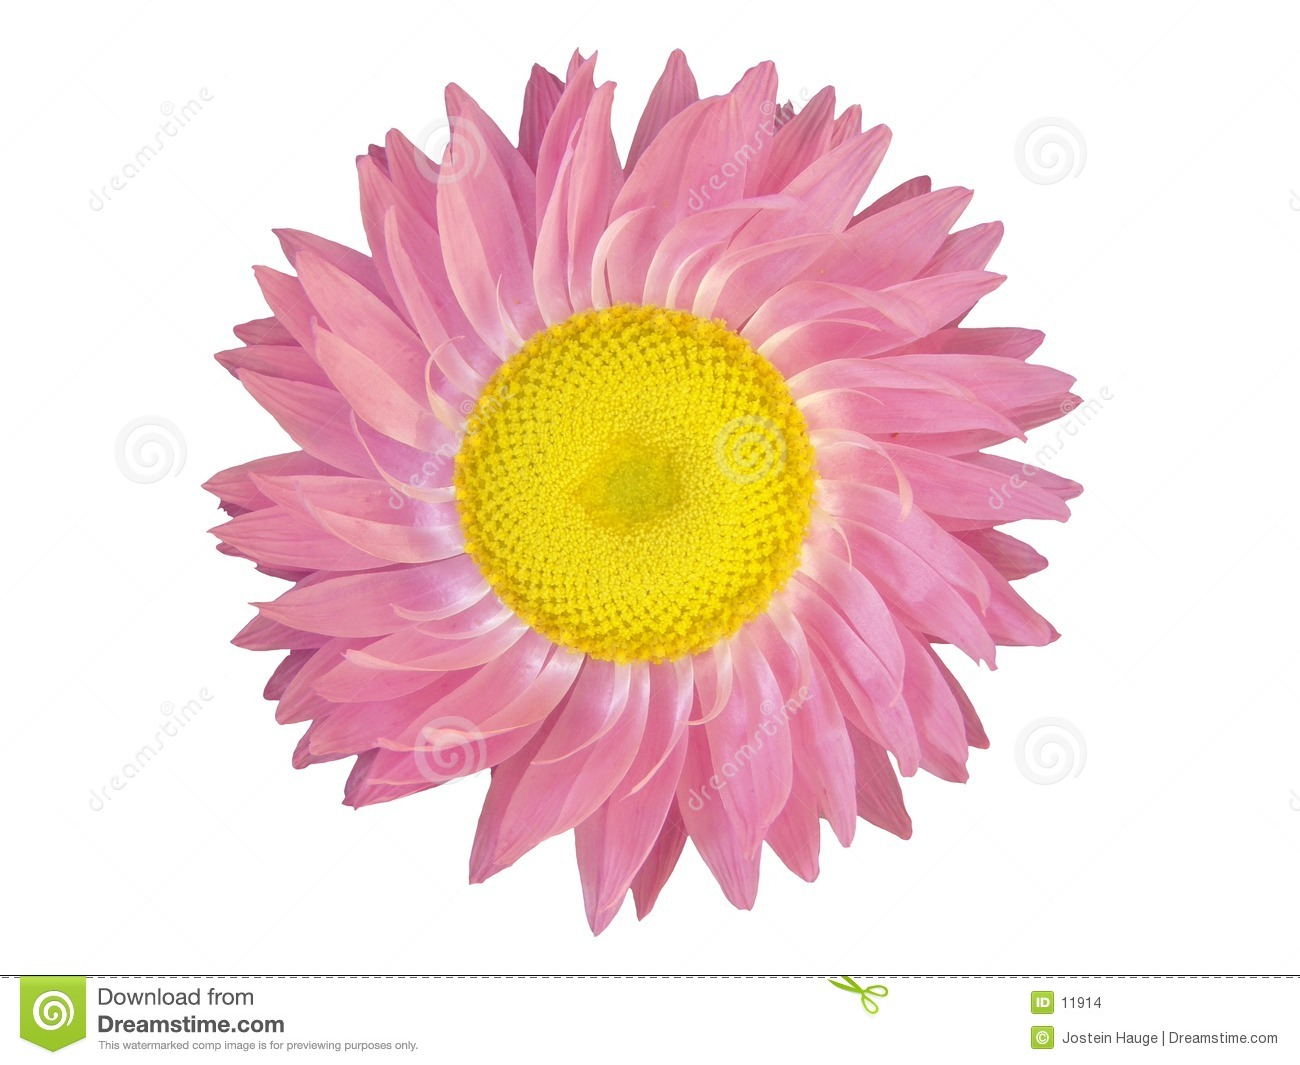 Design Elements: Pink Flower Head